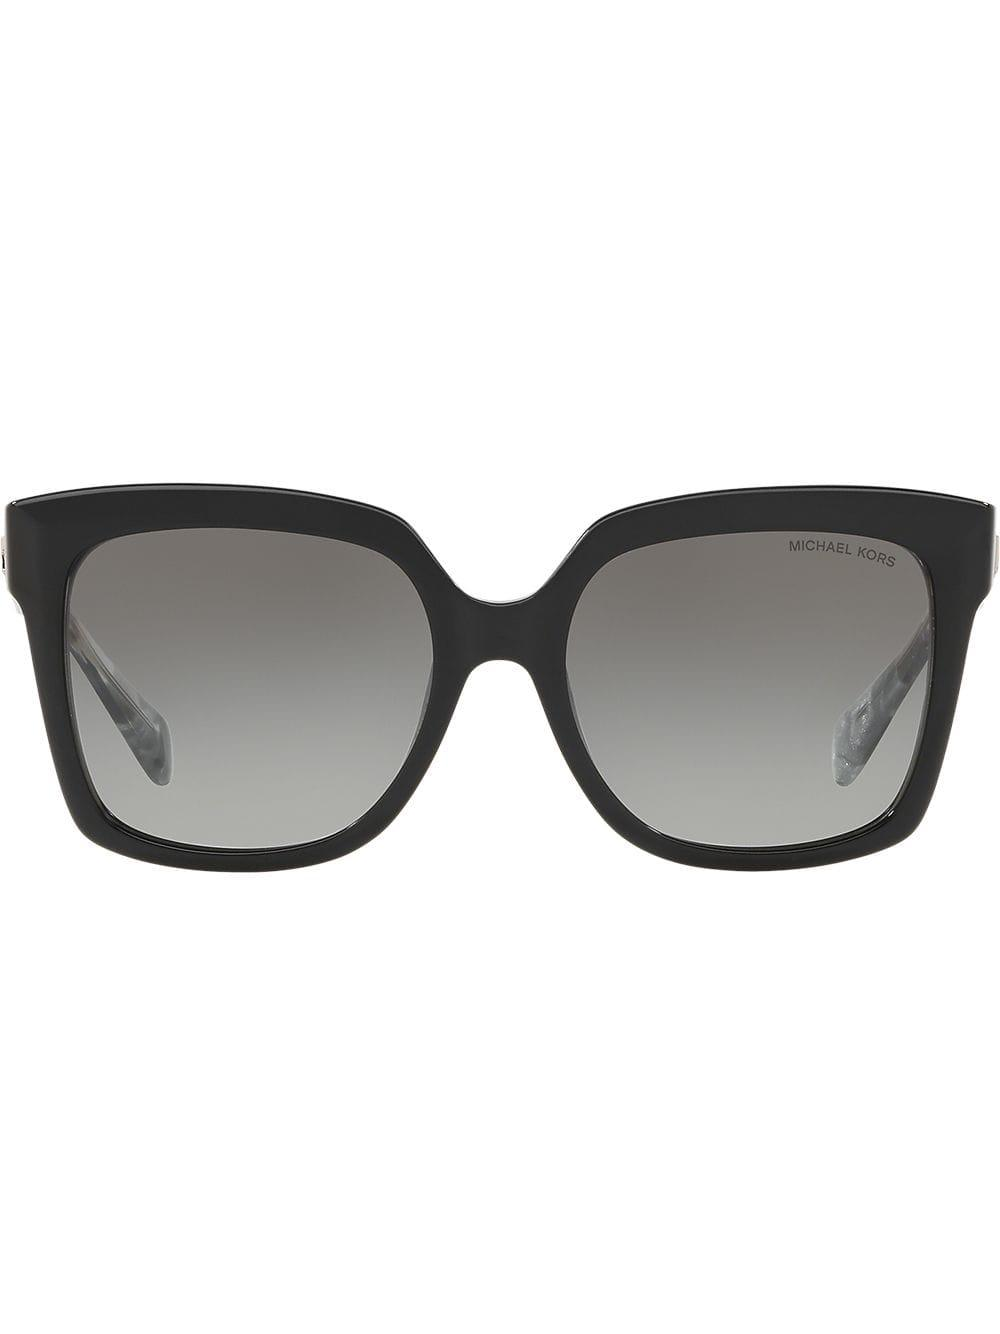 42cd3d7cec11b Michael Kors - Black Oversized Square Shaped Sunglasses - Lyst. View  fullscreen